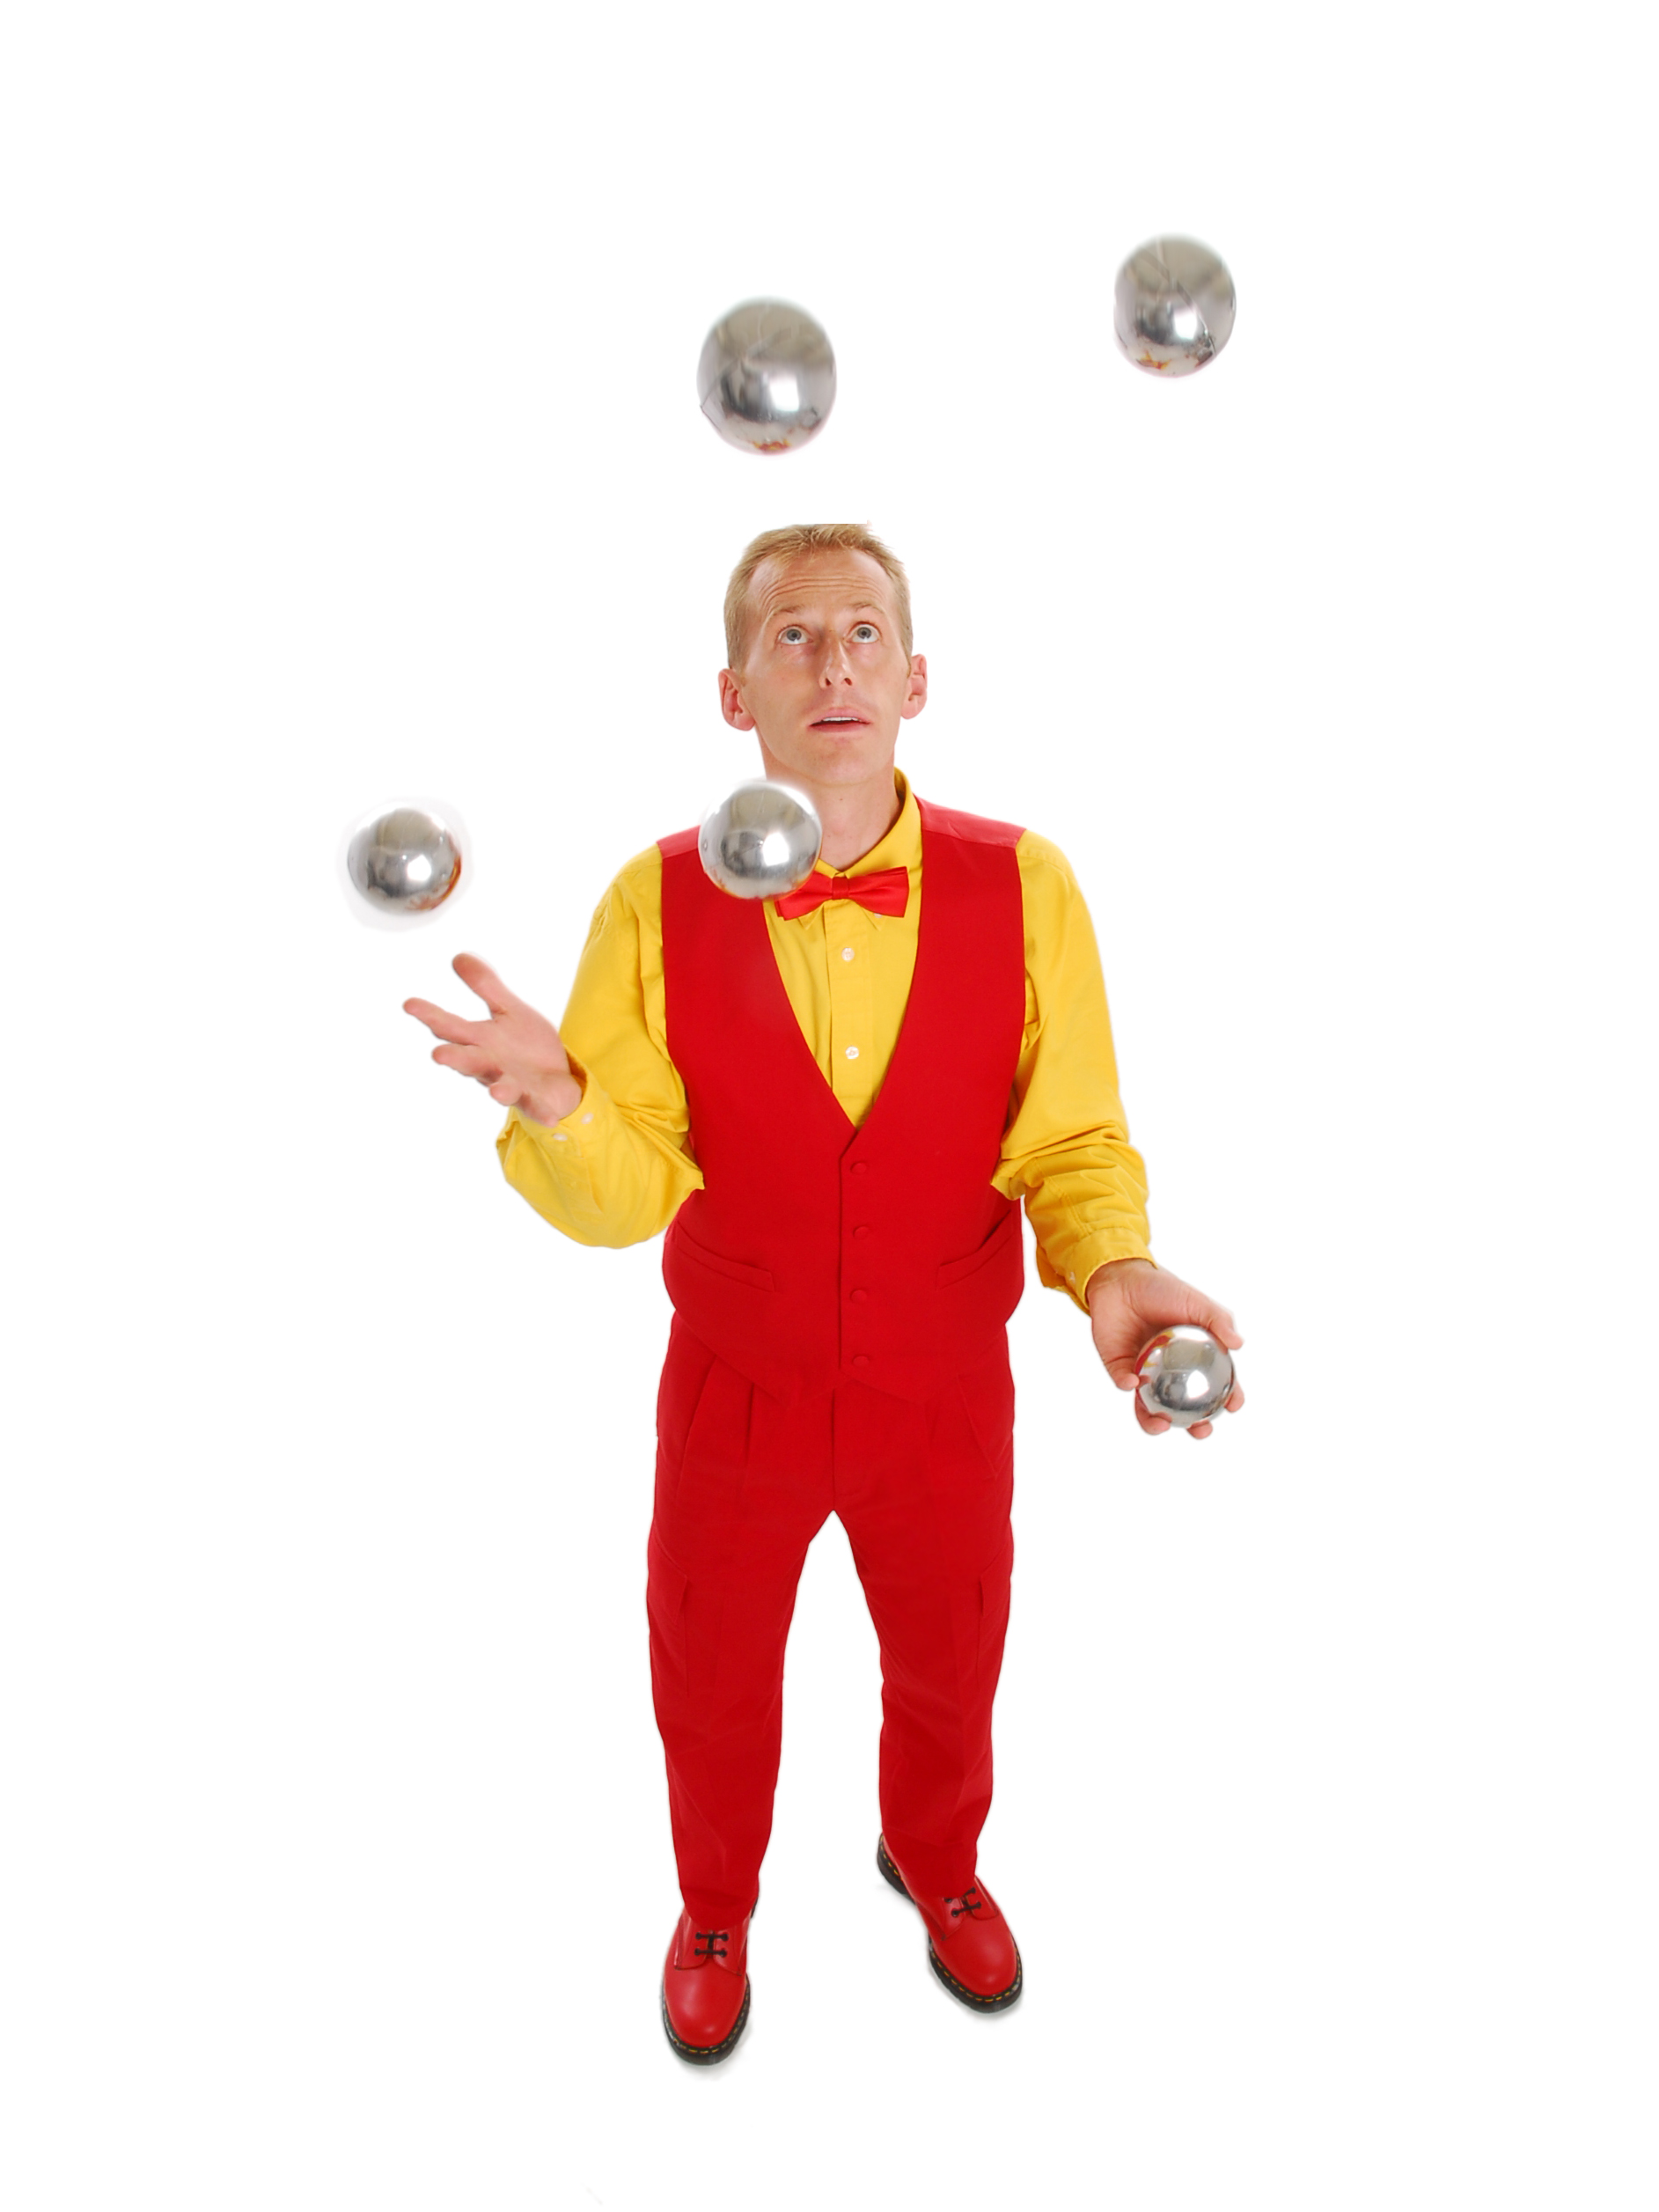 Juggler High Quality Image | Dreamicus